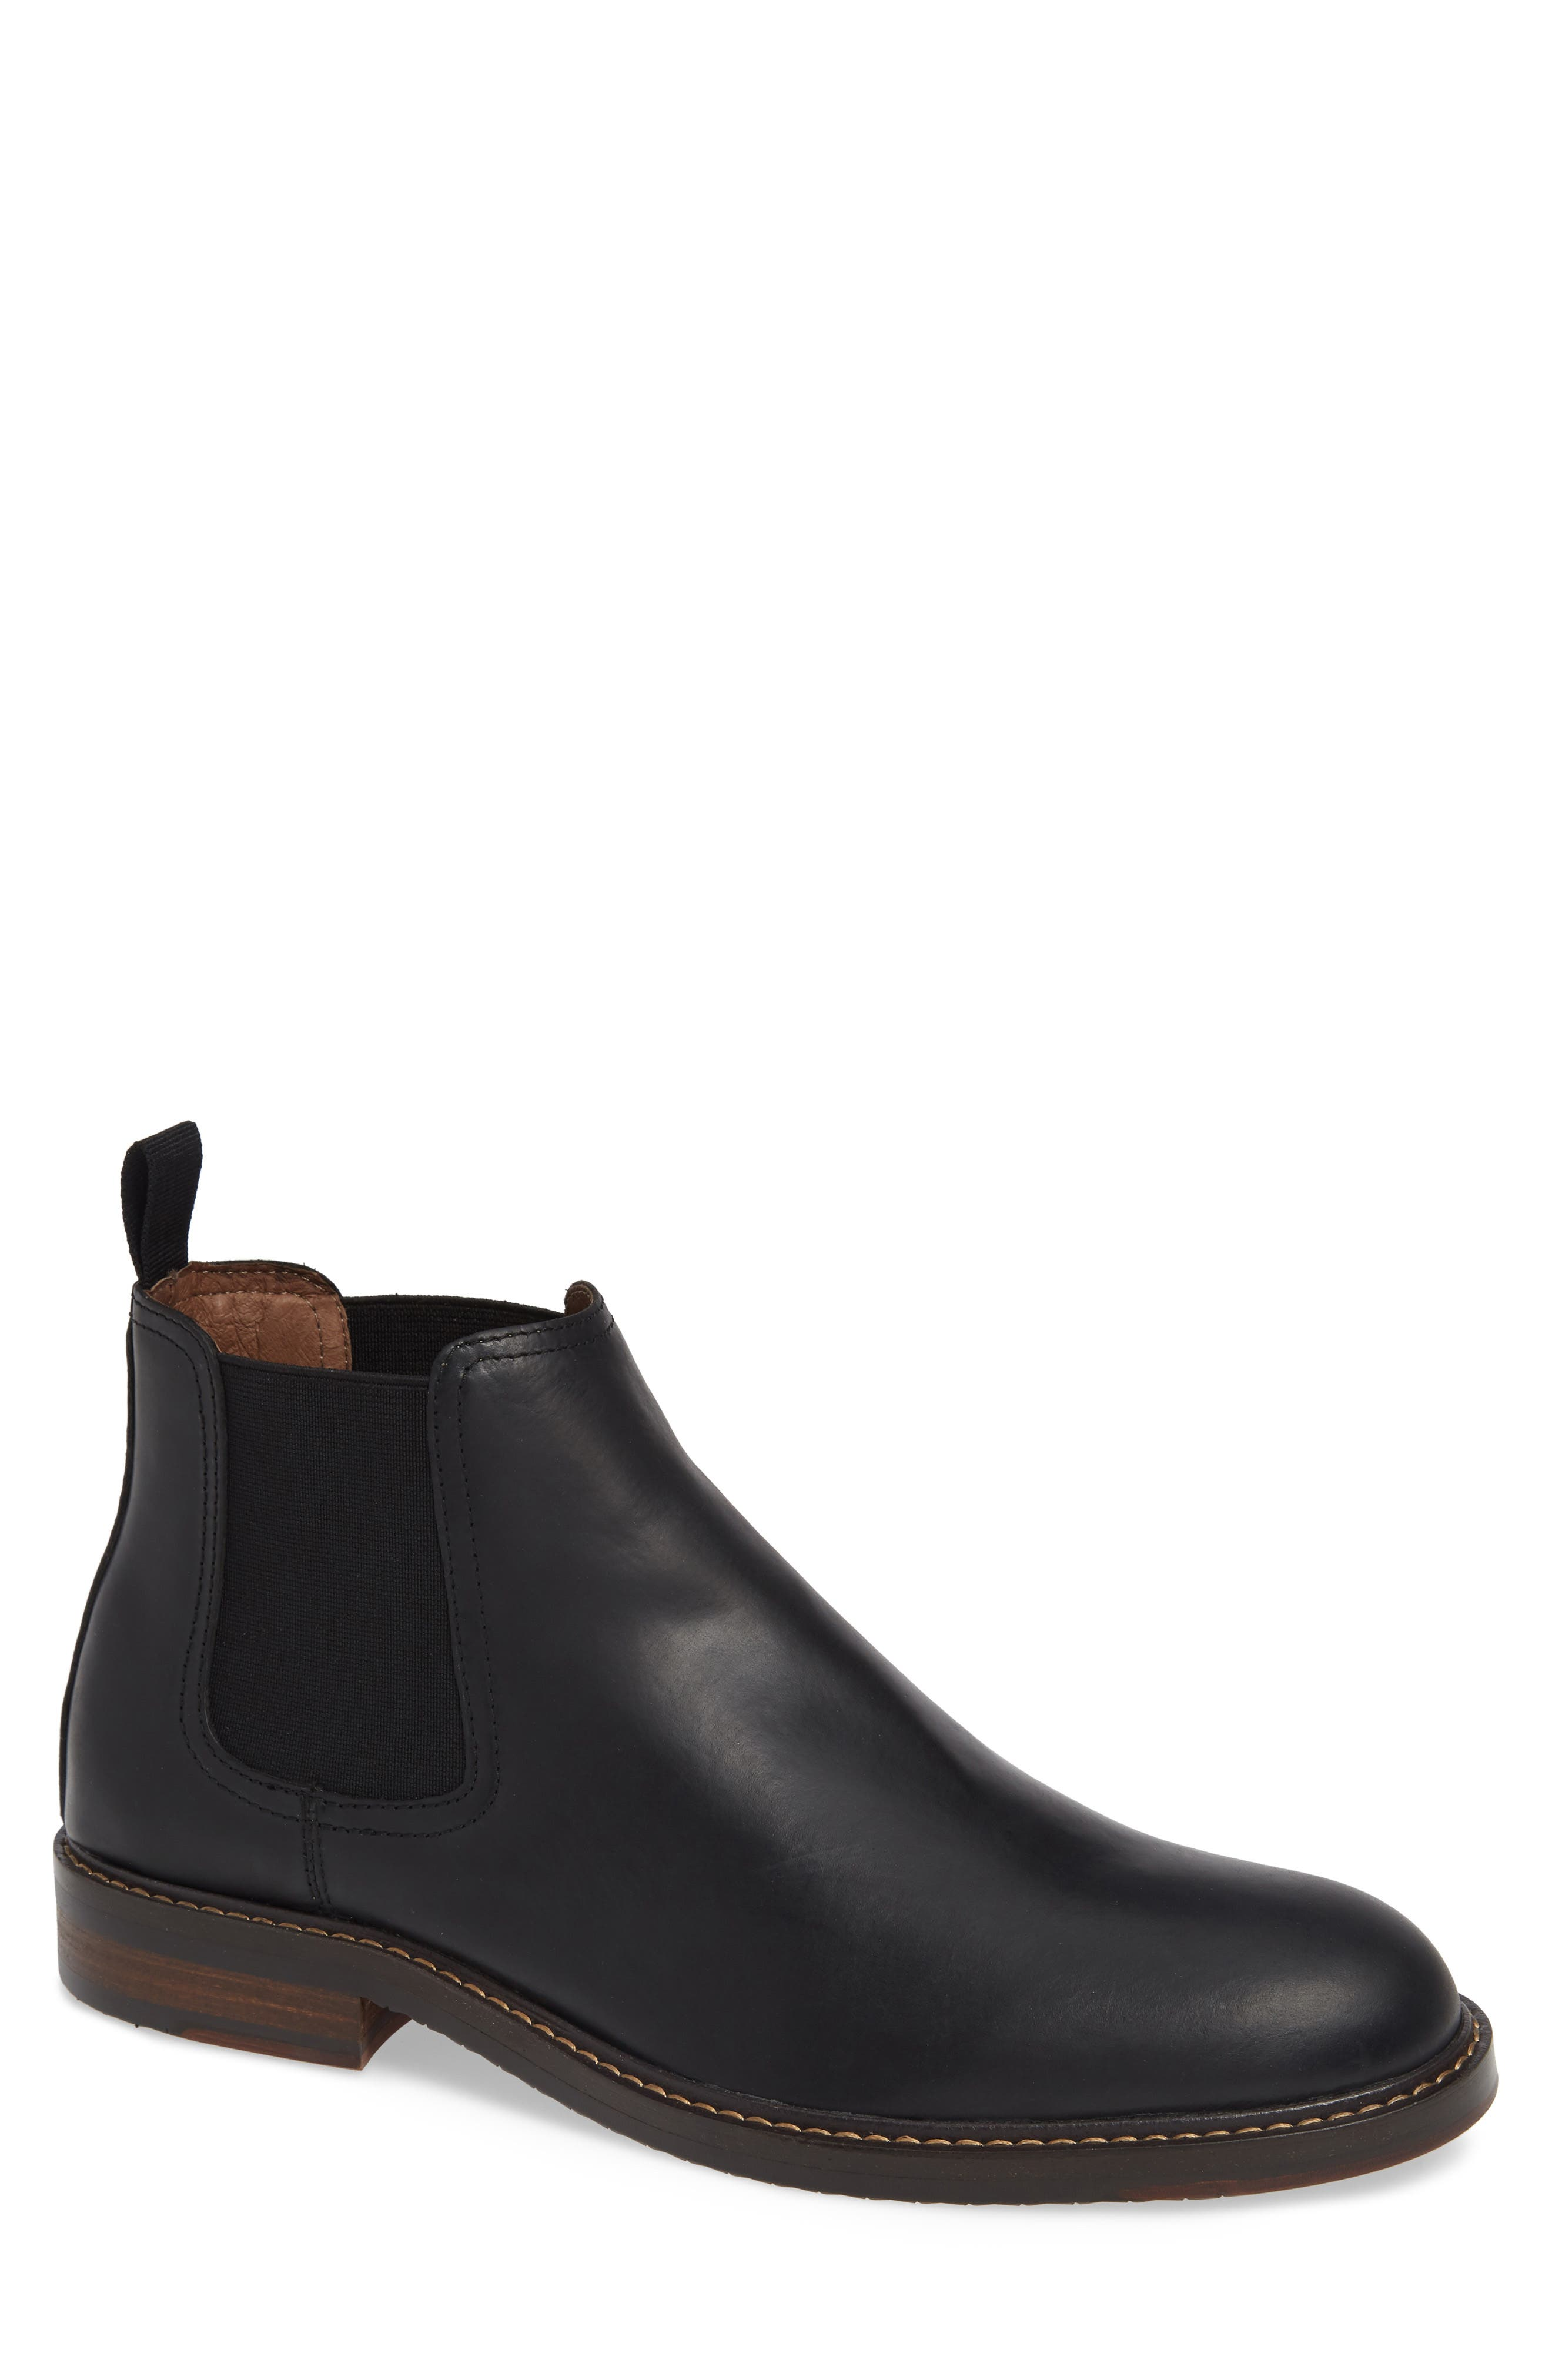 Brooks Chelsea Boot,                         Main,                         color, BLACK LEATHER